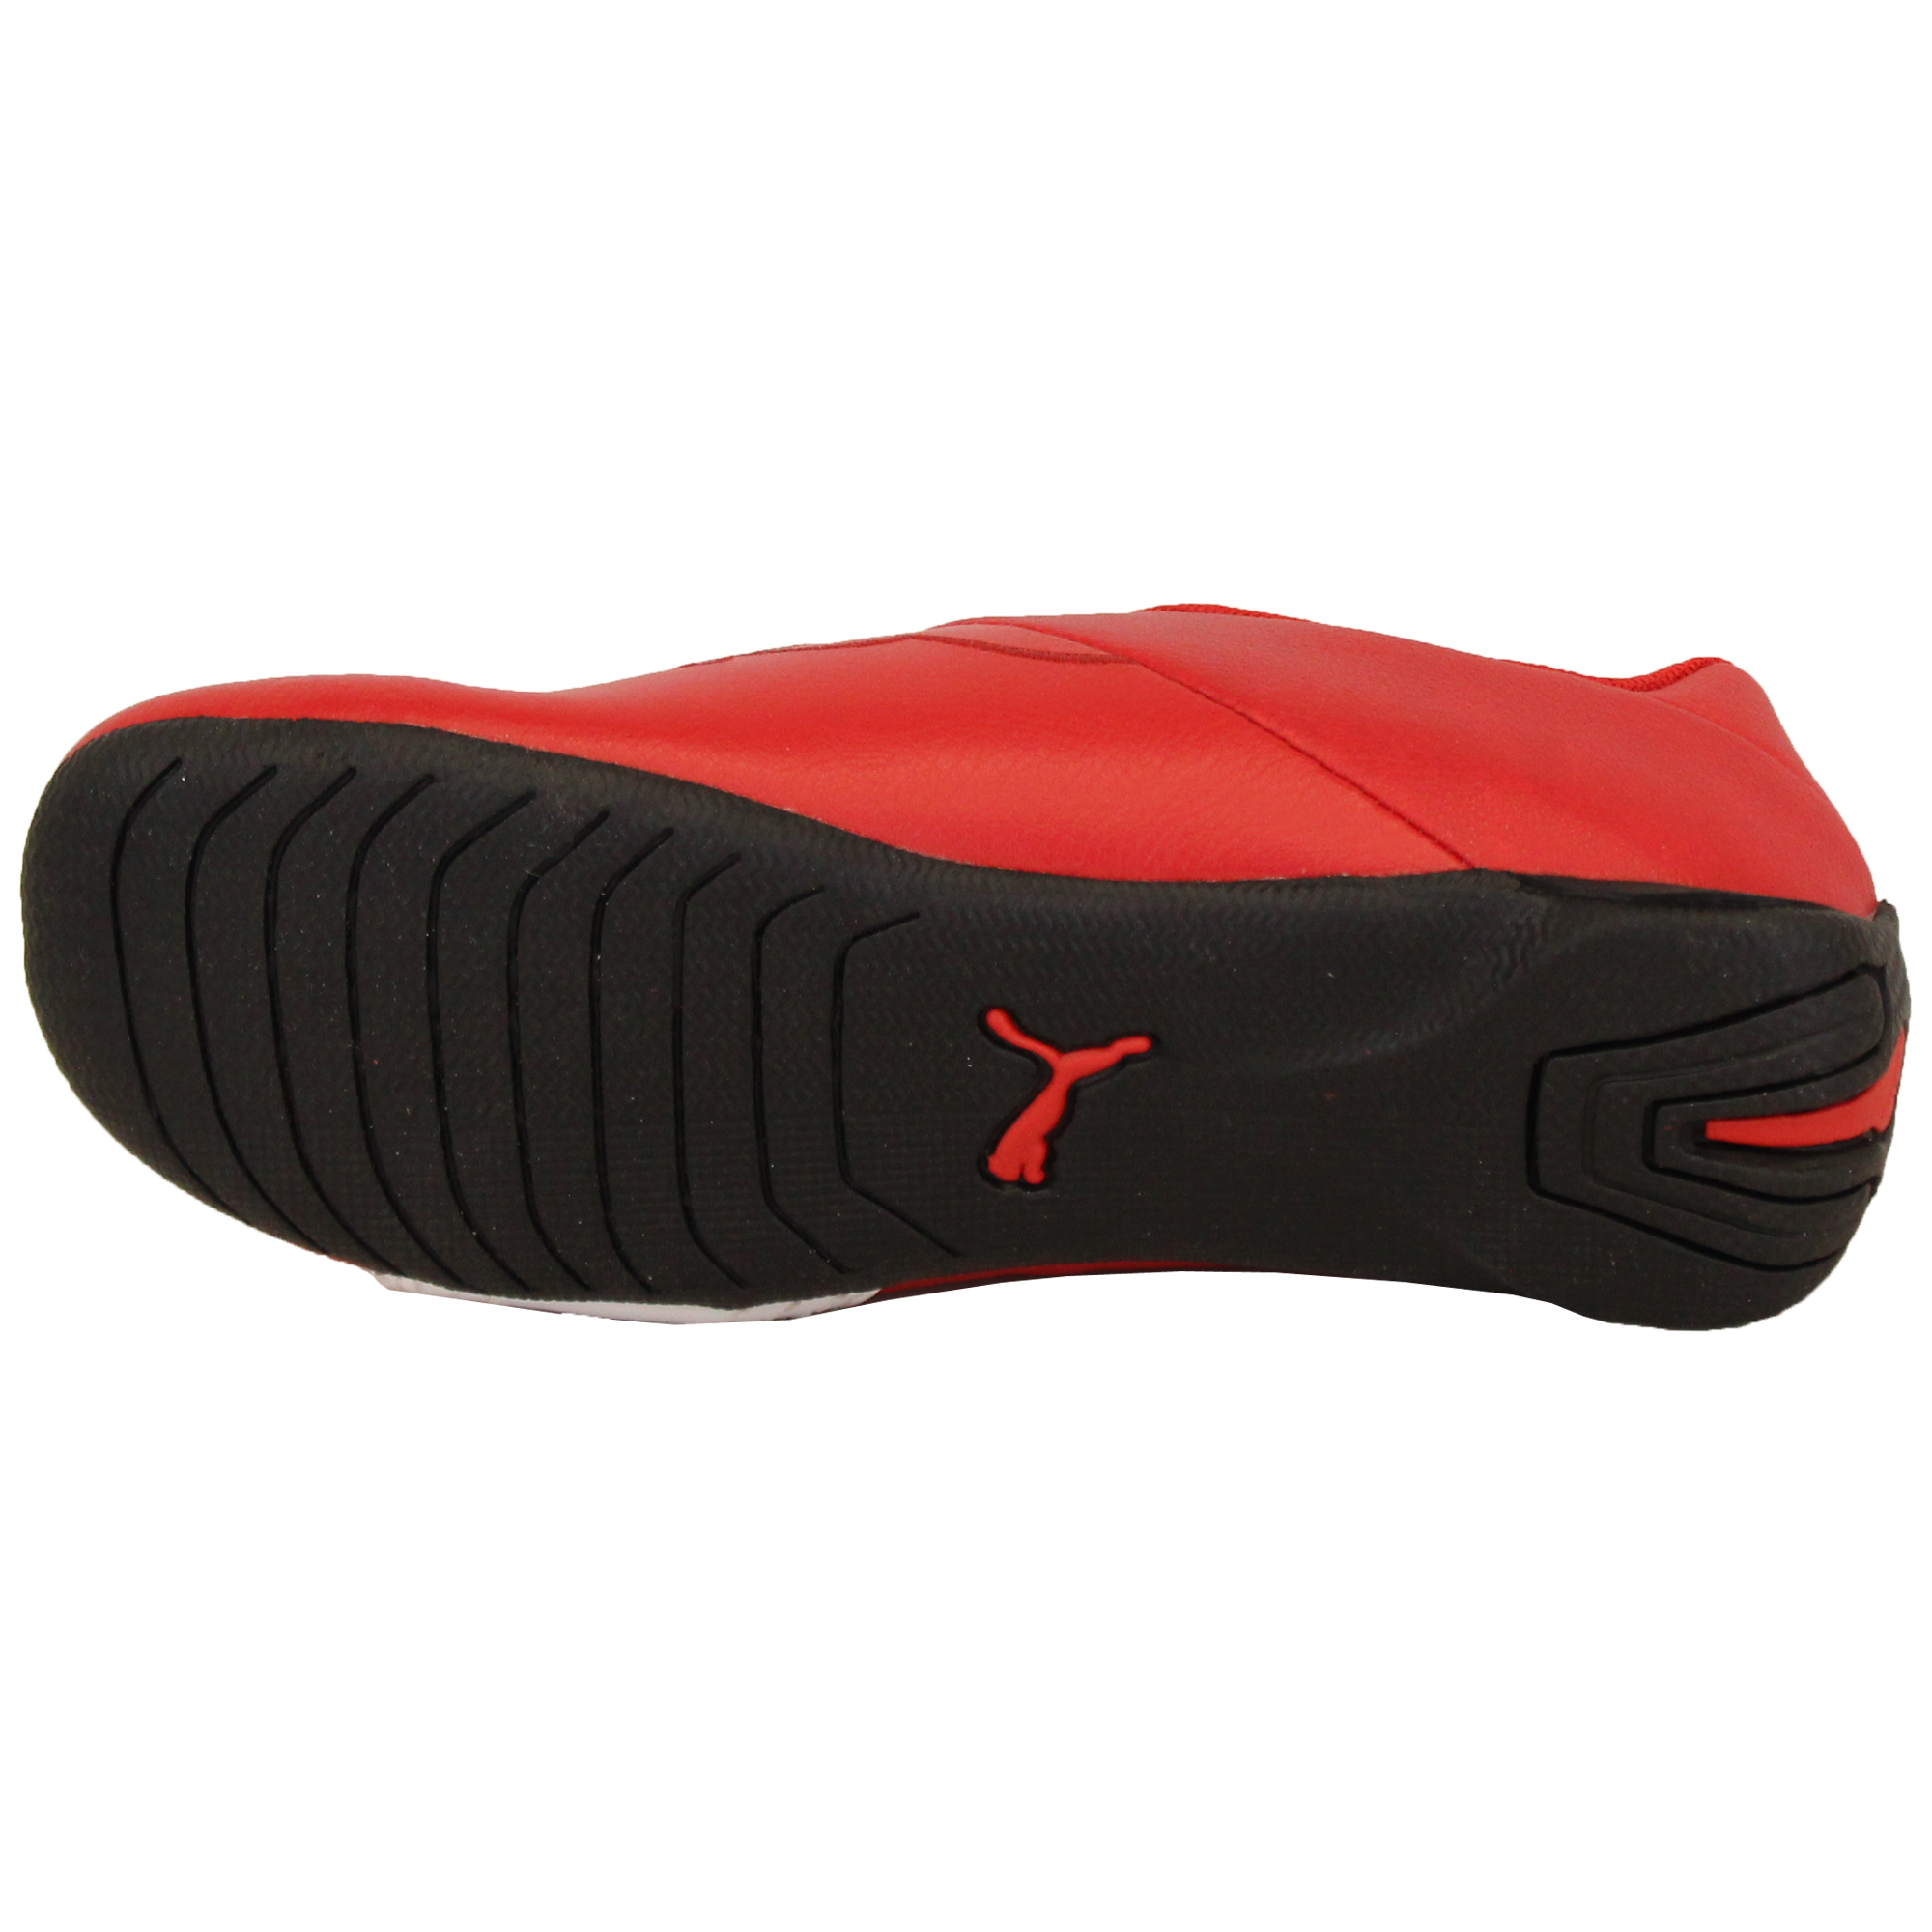 Boys-PUMA-Ferrari-Leather-Trainers-Kids-Evo-Power-Speed-Cat-Sports-Shoes-Casual thumbnail 8